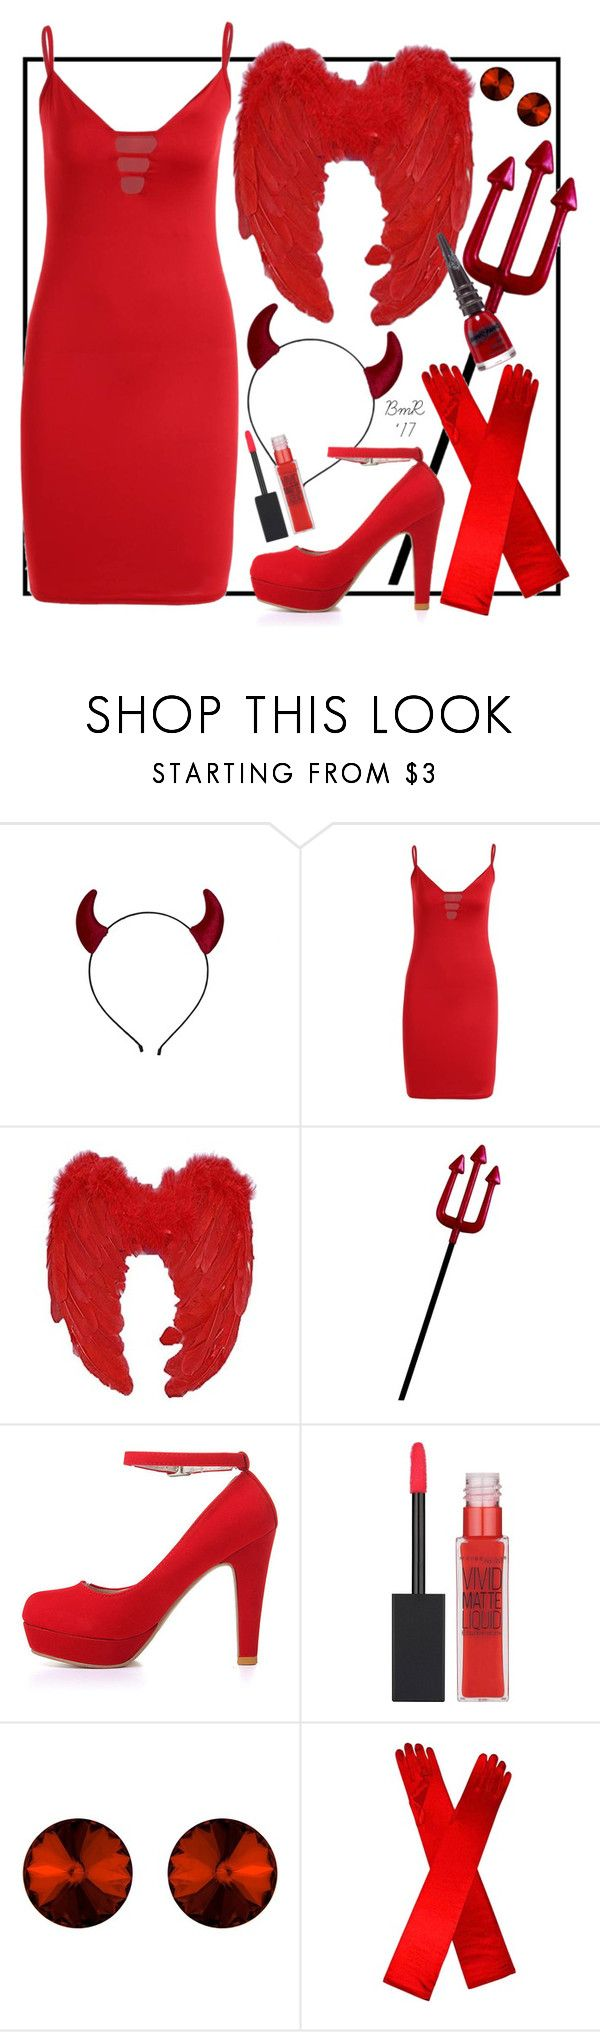 """Lil' Devil"" by barbmama ❤ liked on Polyvore featuring Rubie's Costume Co., Maybelline, Manic Panic NYC, Halloween, under50, polyvorecontest and halloweencostume"